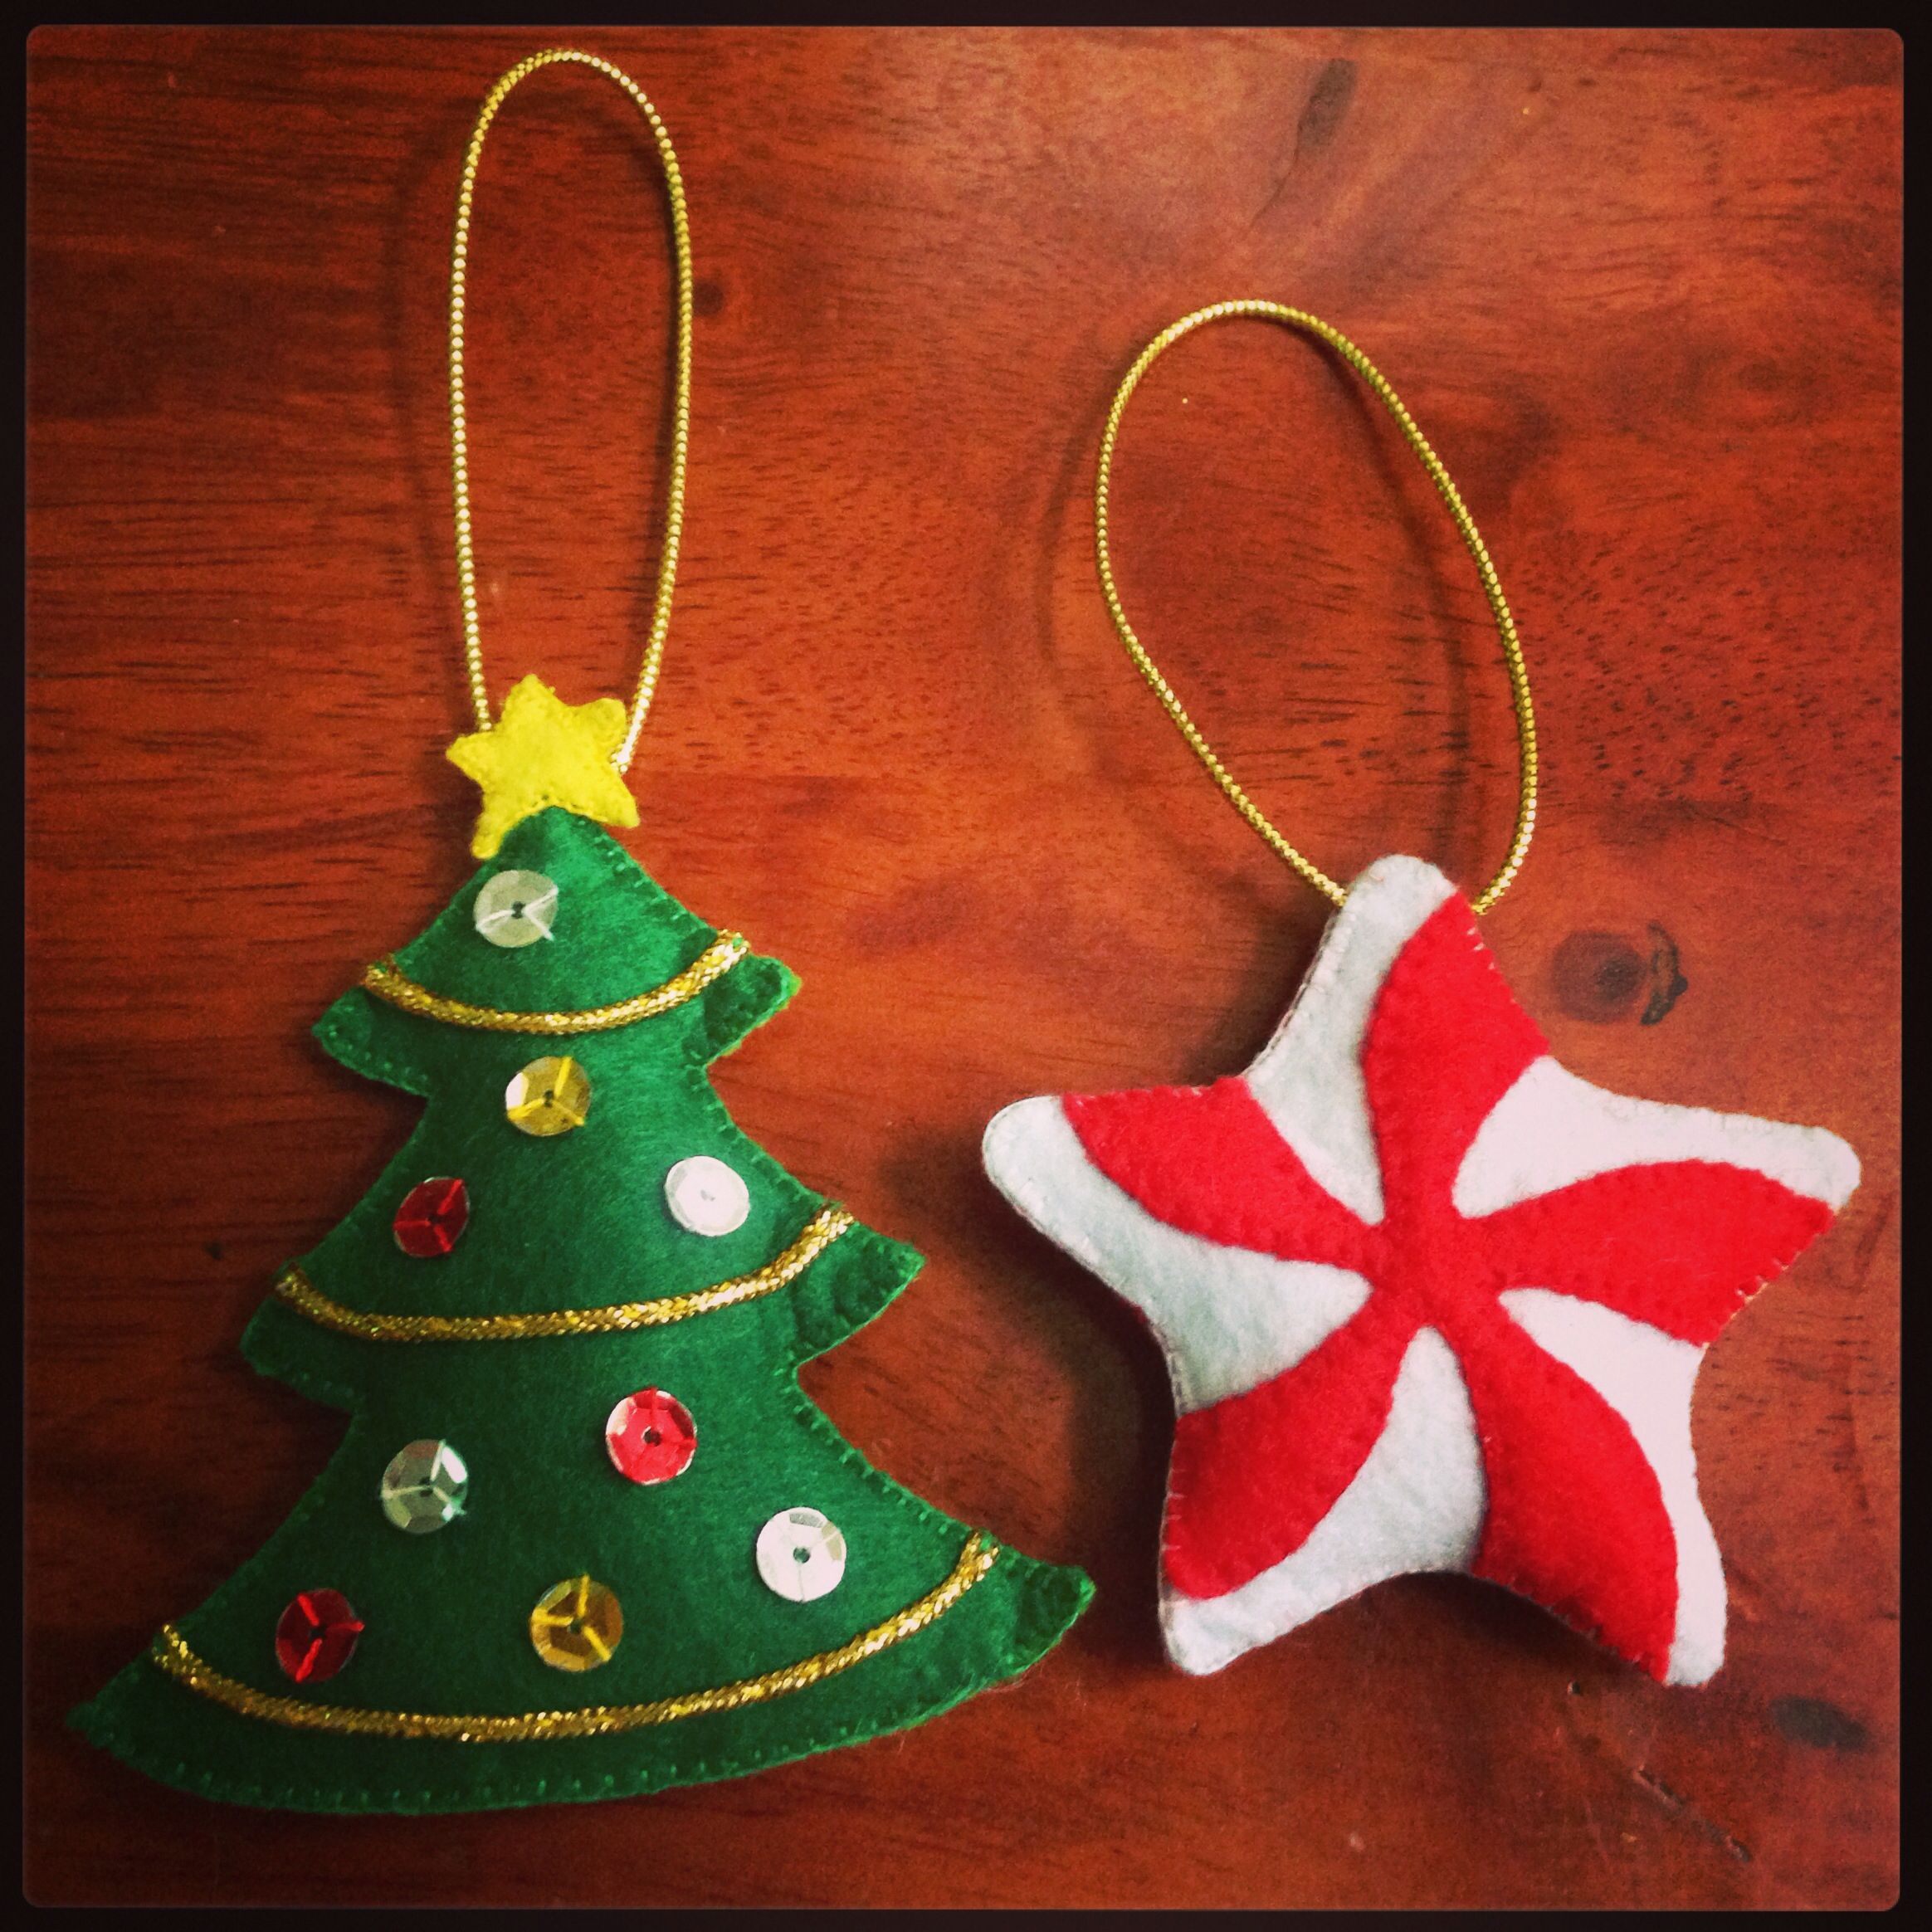 Hand Sewn Christmas Ornaments Sewn Christmas Ornaments Crafty Gifts Christmas Crafts